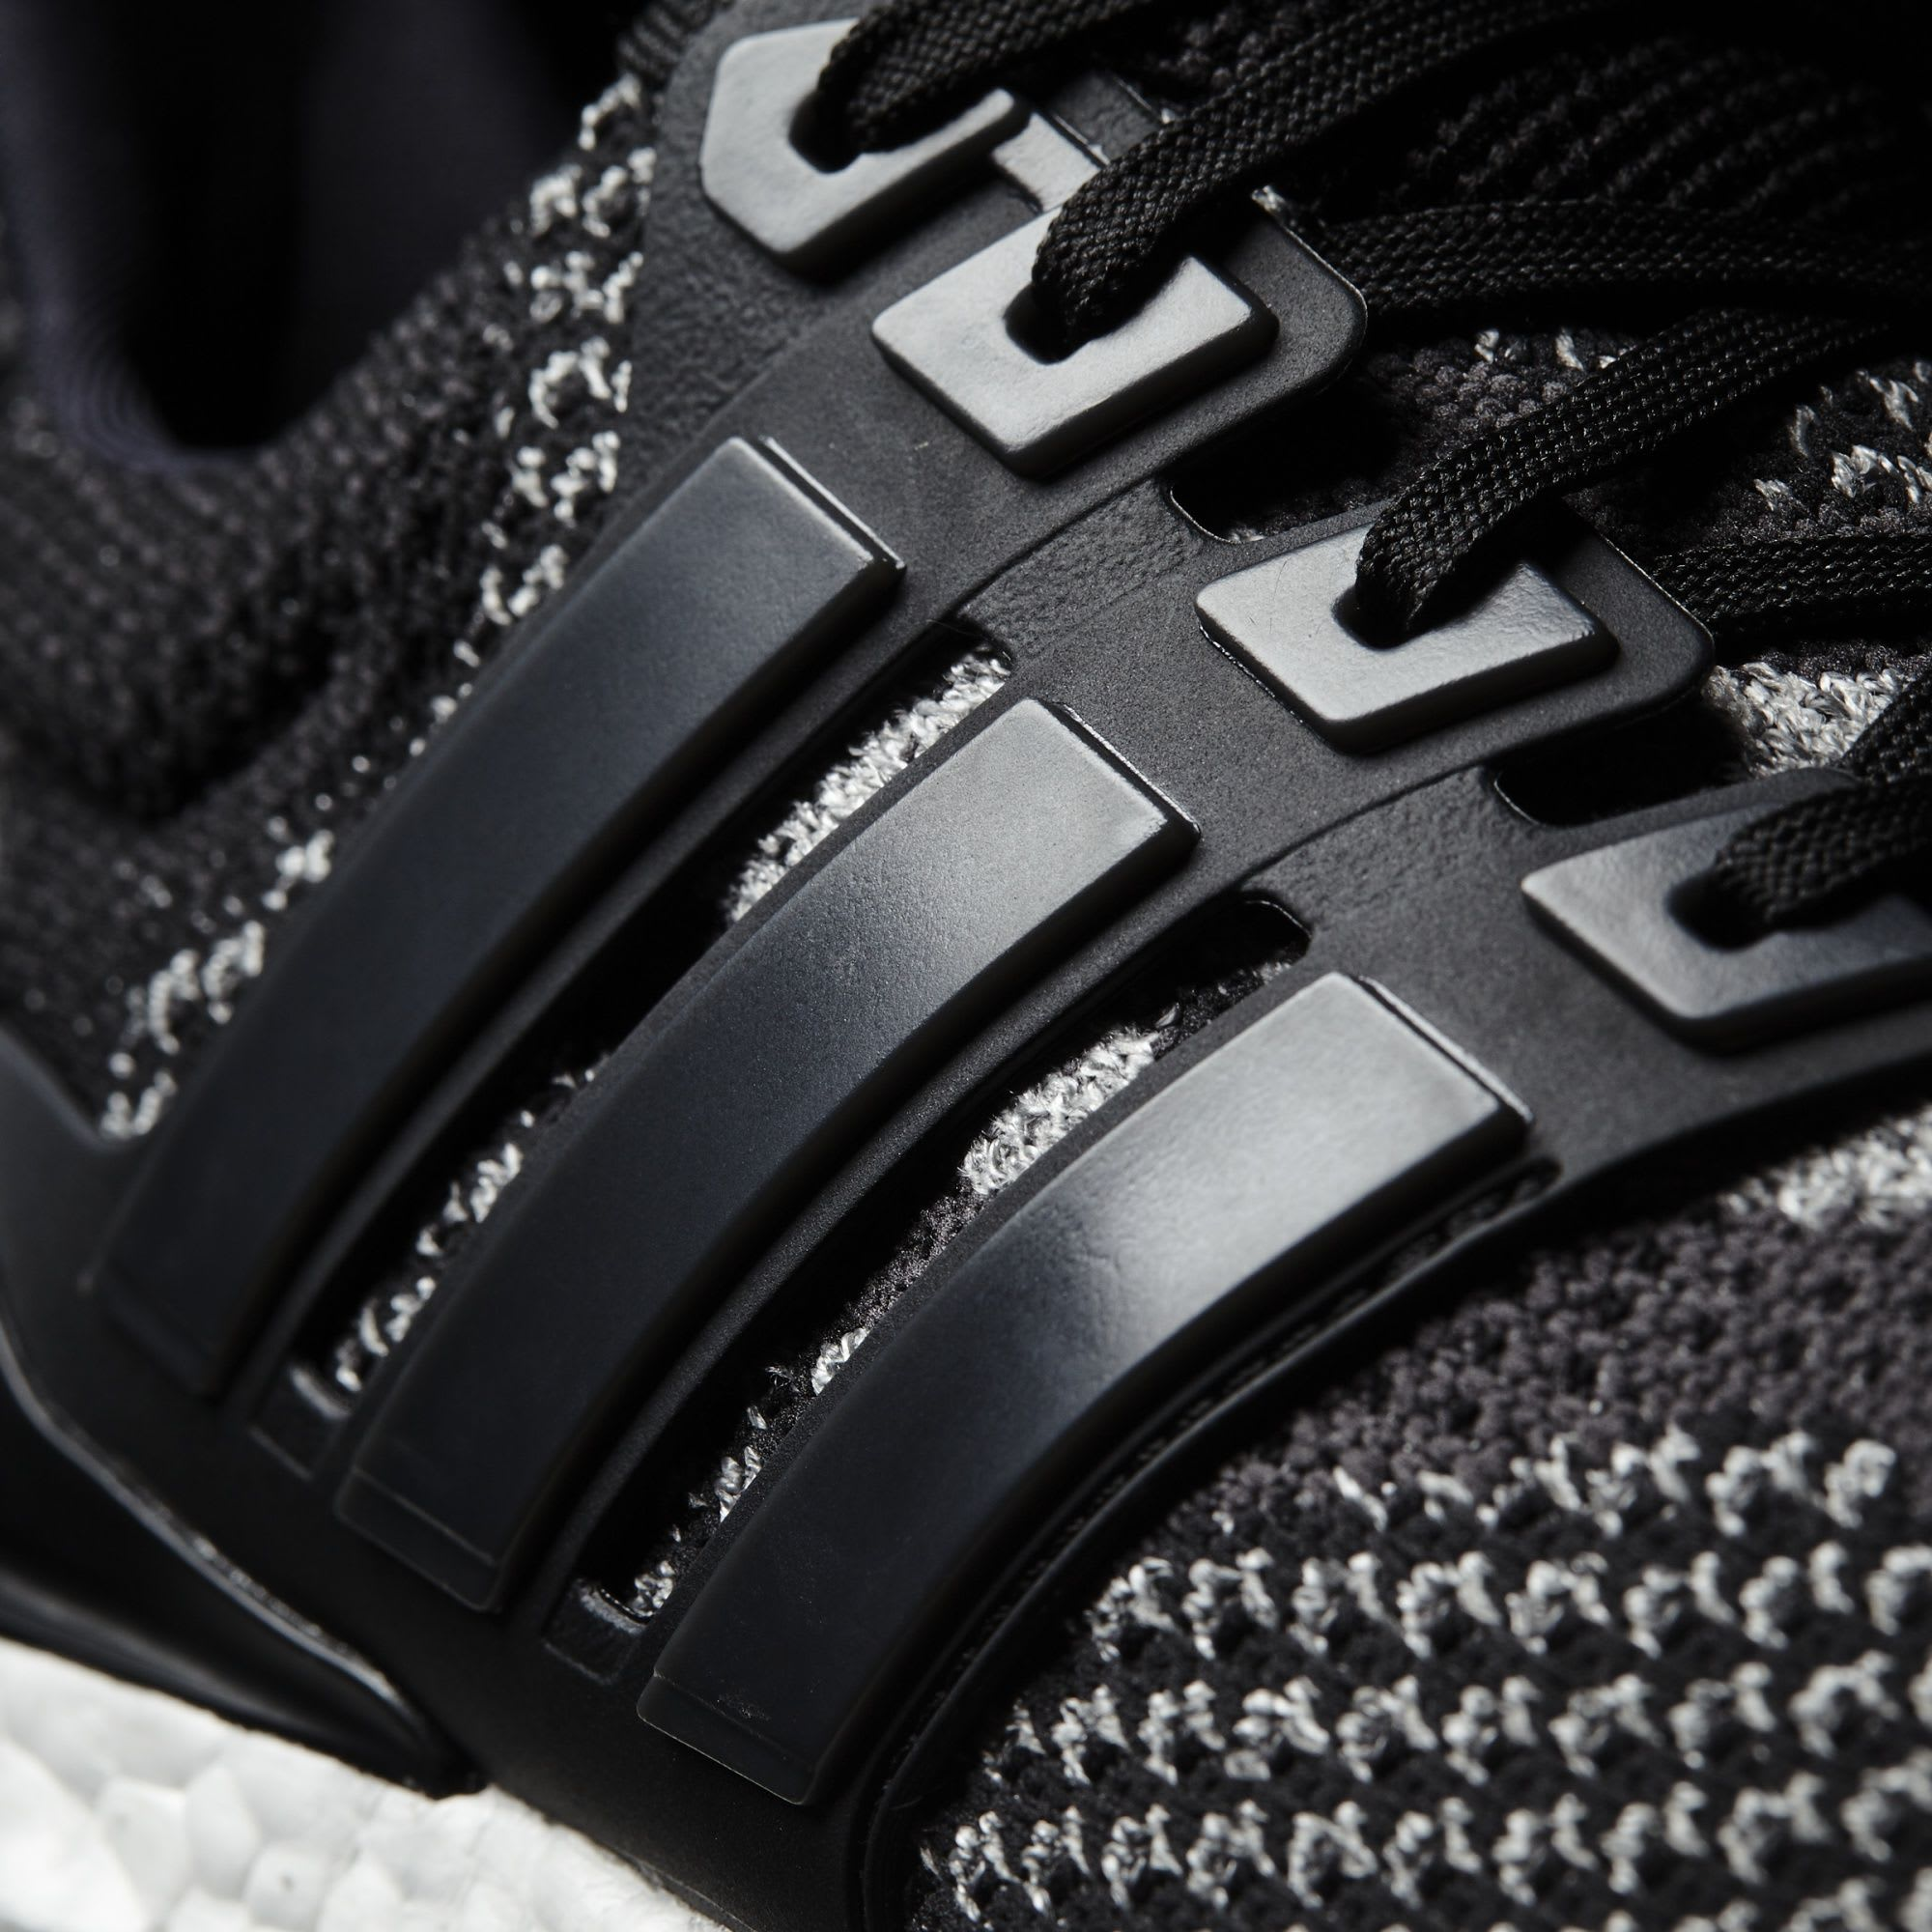 c60b56e63cba5 ... czech image via adidas adidas ultra boost 2.0 reflective release date  by1795 cage 430f2 eb86a